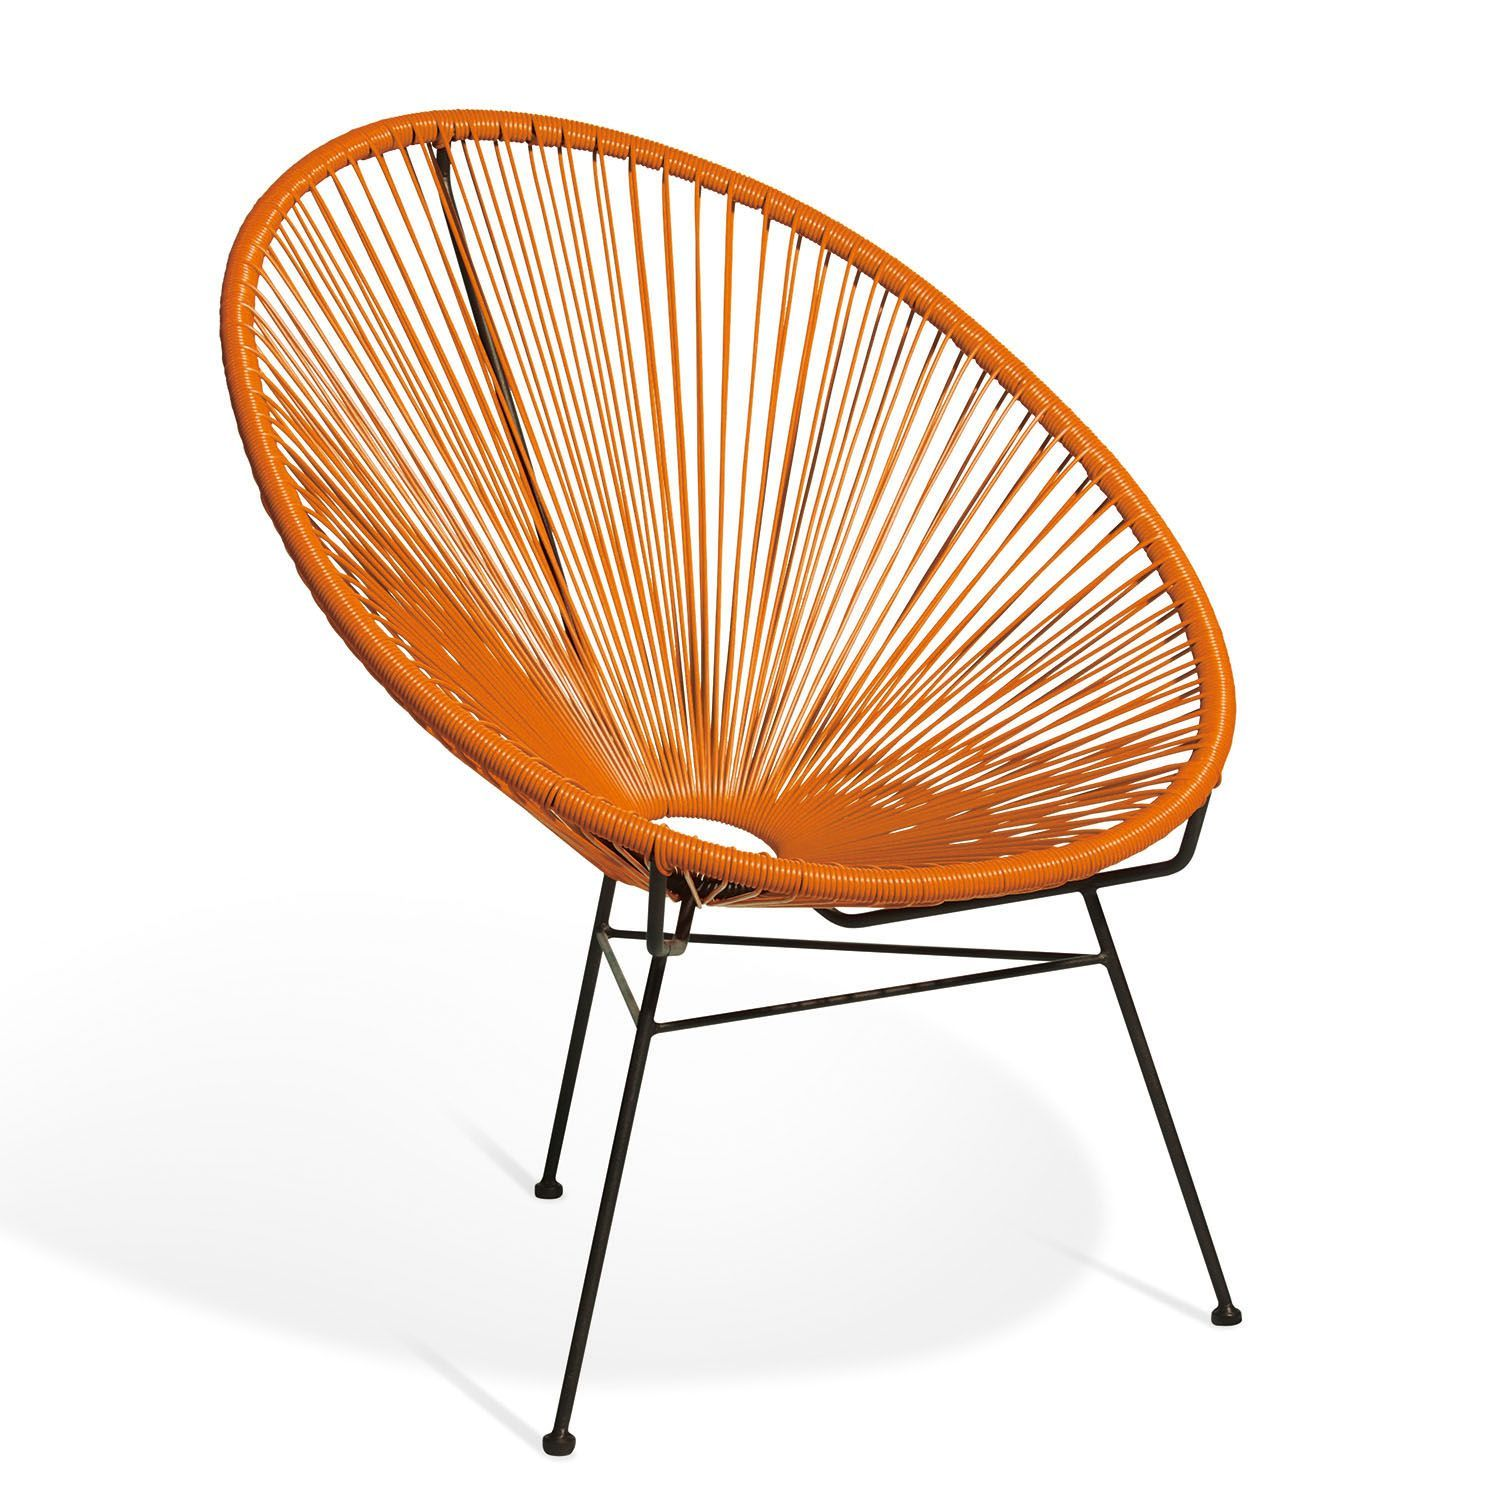 Acapulco chair cb2 - Explore Acapulco Chair Icon Design And More